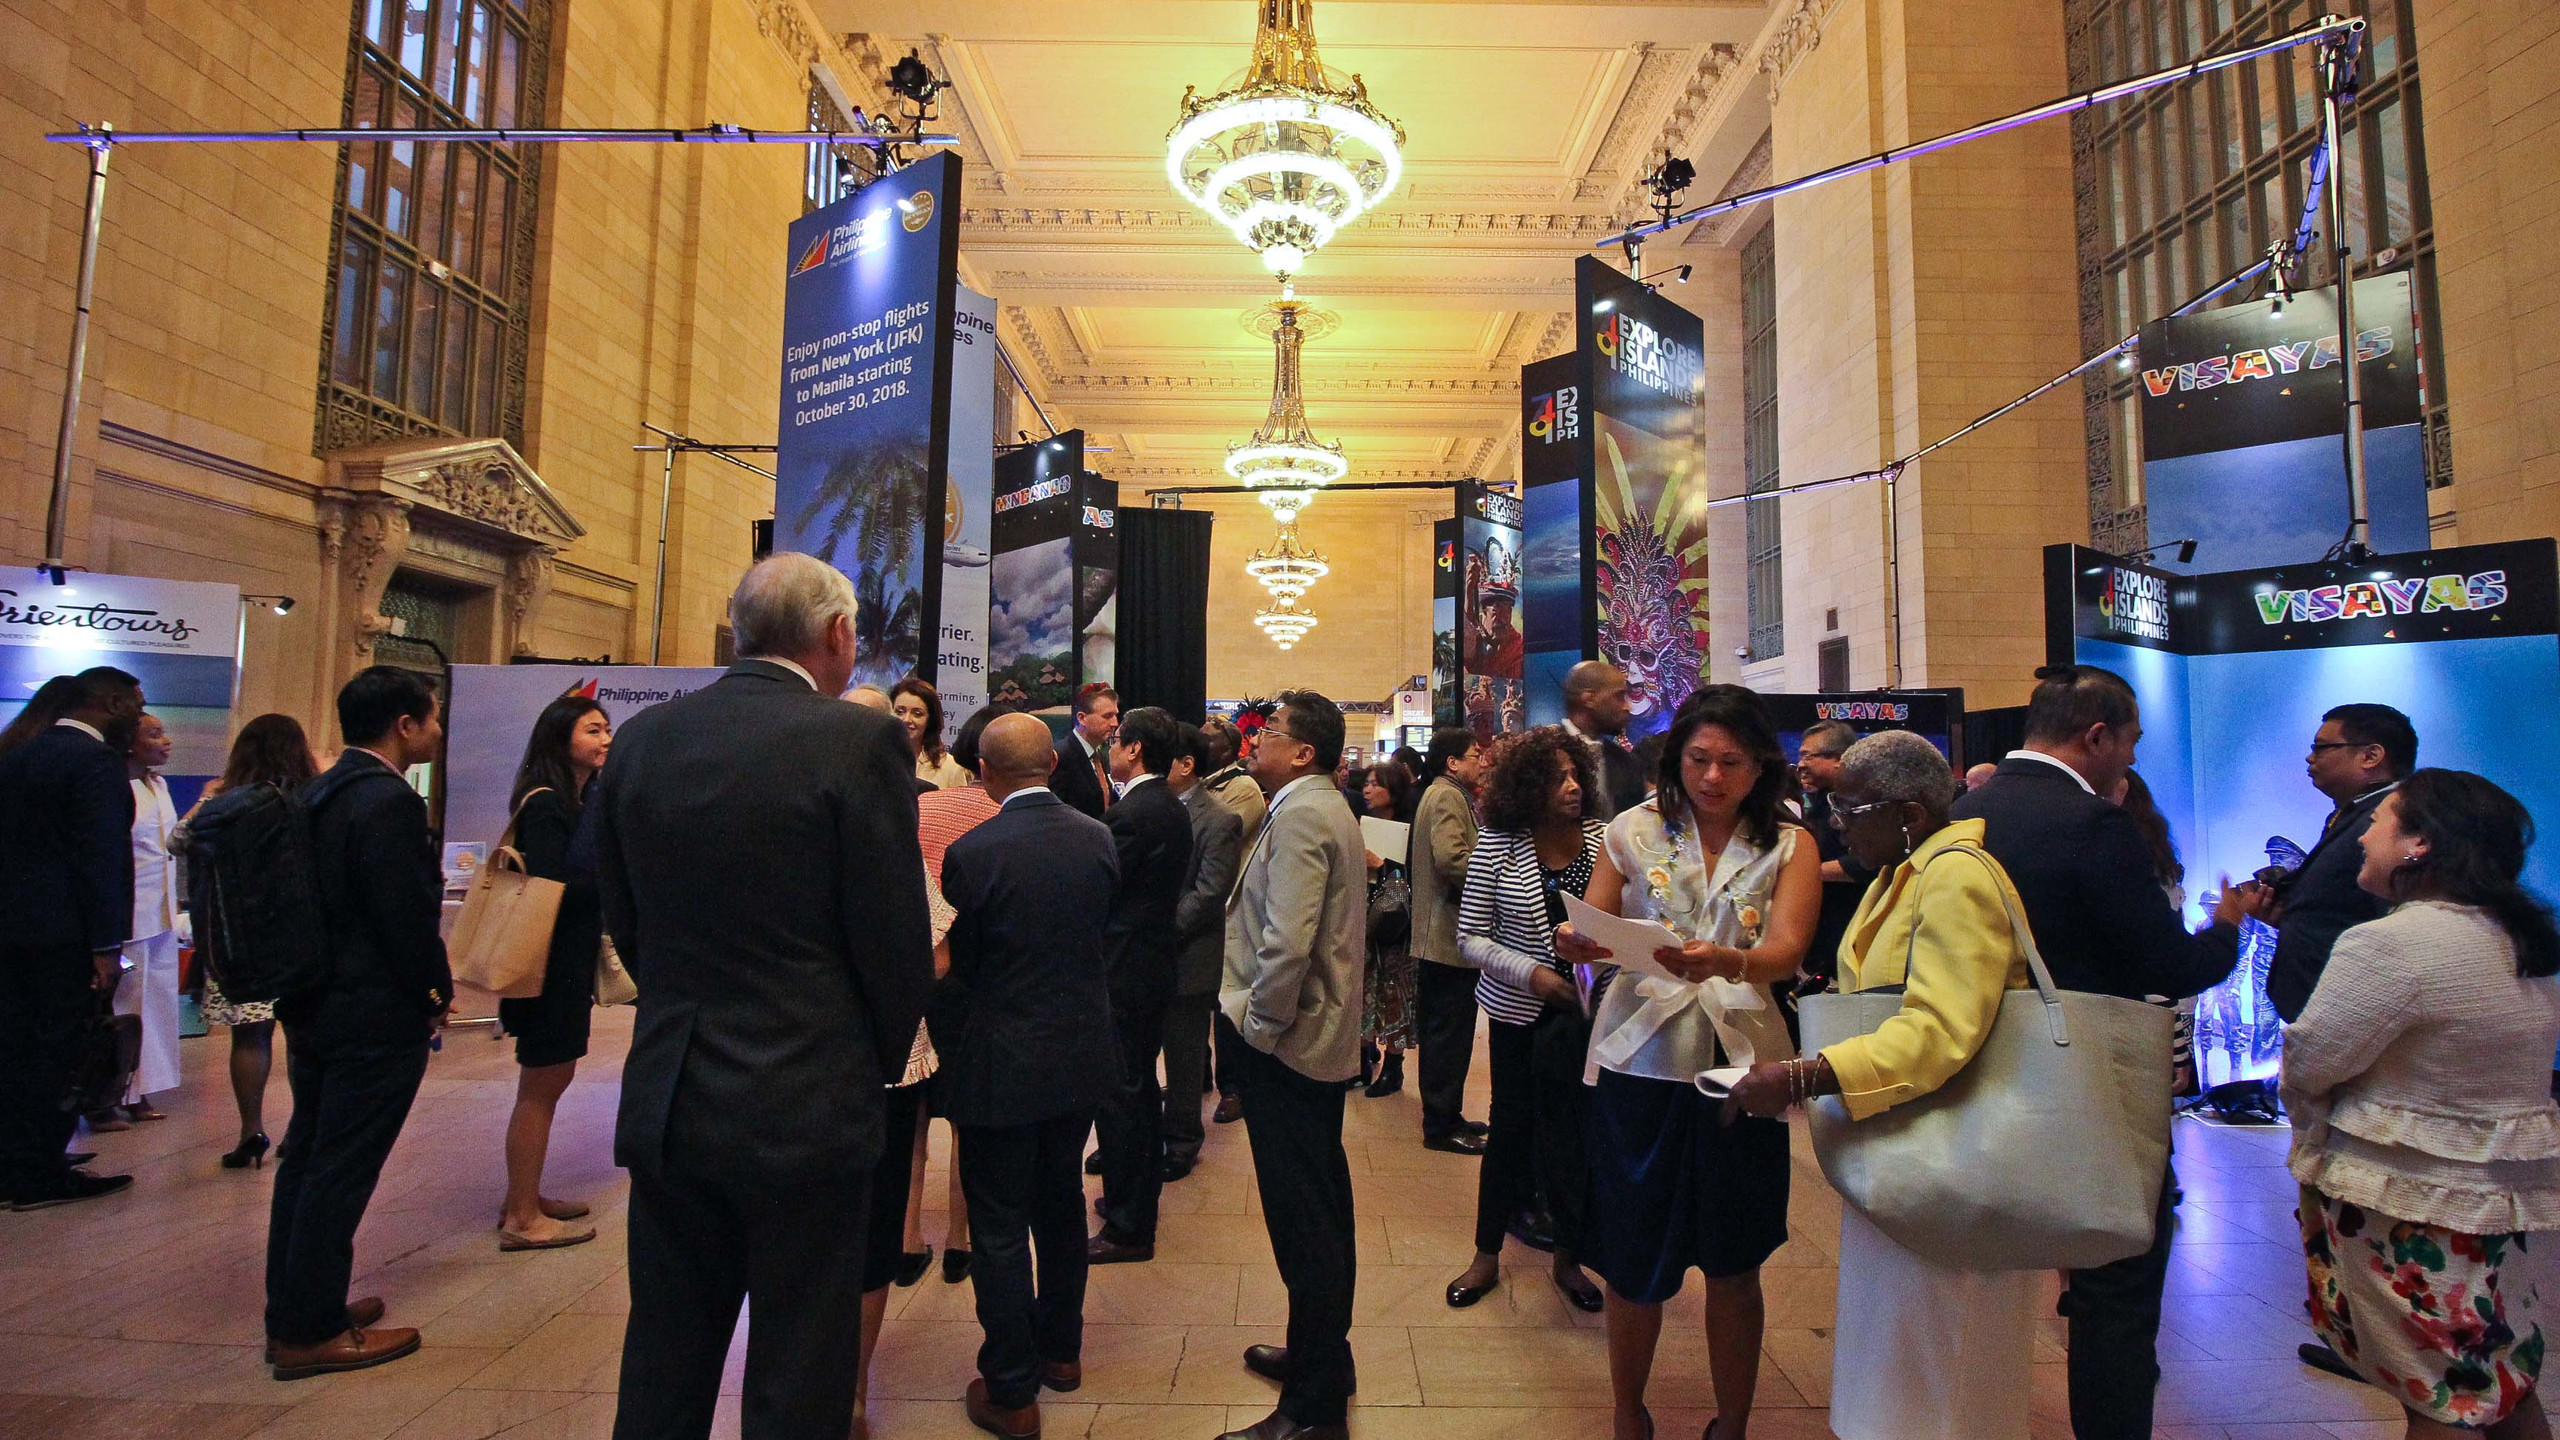 The Explore Islands Philippines launch and exhibit at the Vanderbilt Hall of the Grand Central Terminal, New York on May 9, 2018.